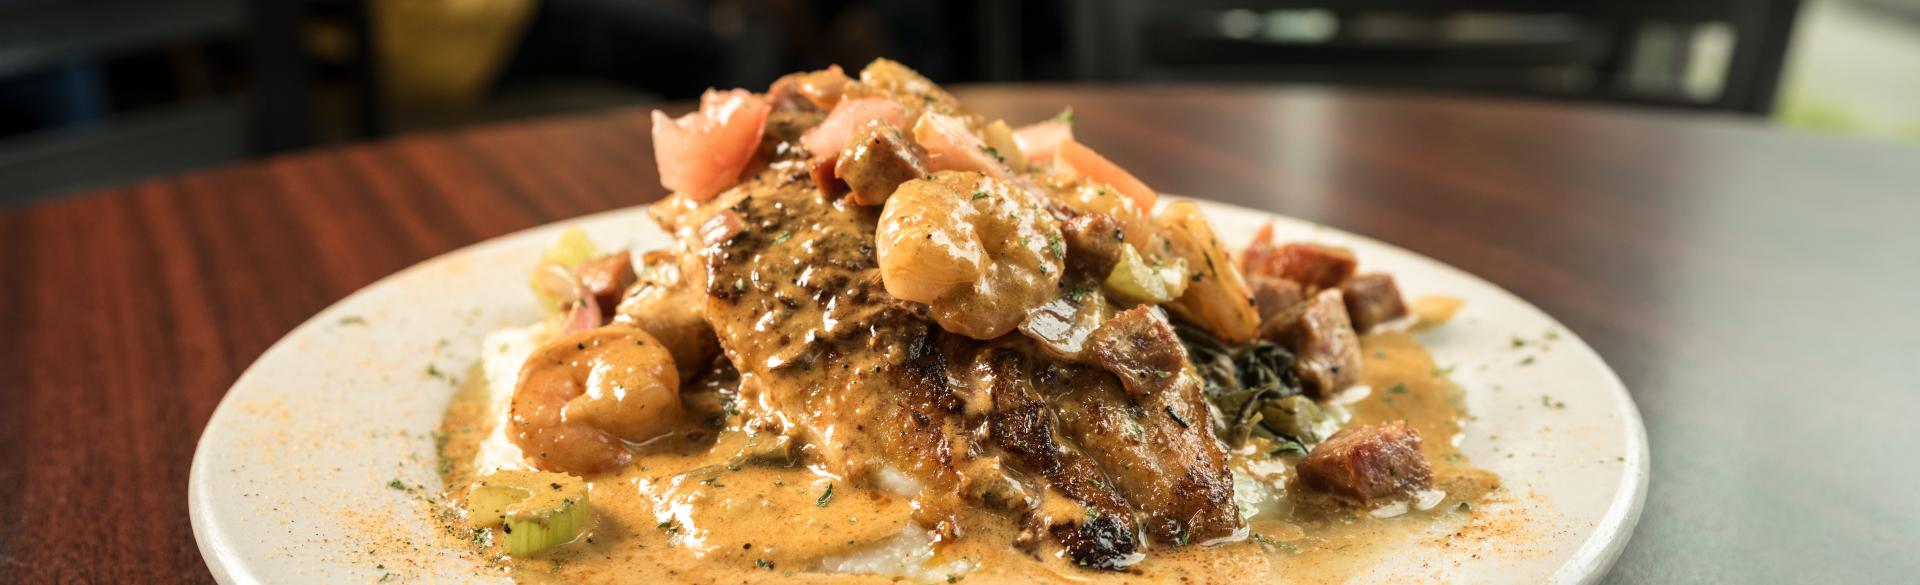 Try Homemade Southern Style Soul Food At Soul Food Cafe